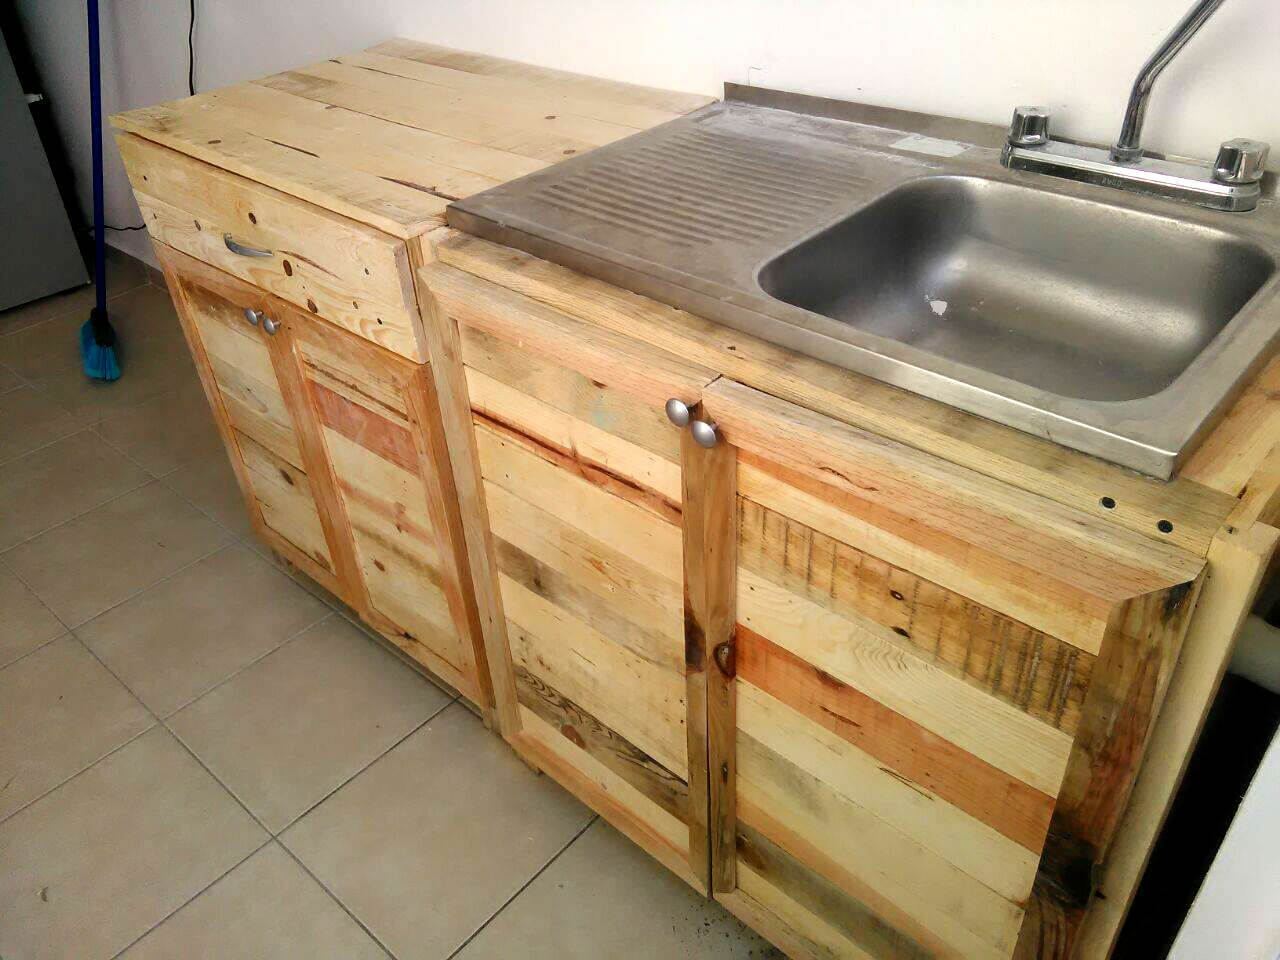 Kitchen Sink Cabinet kitchen wholly made from recycled pallets | 99 pallets